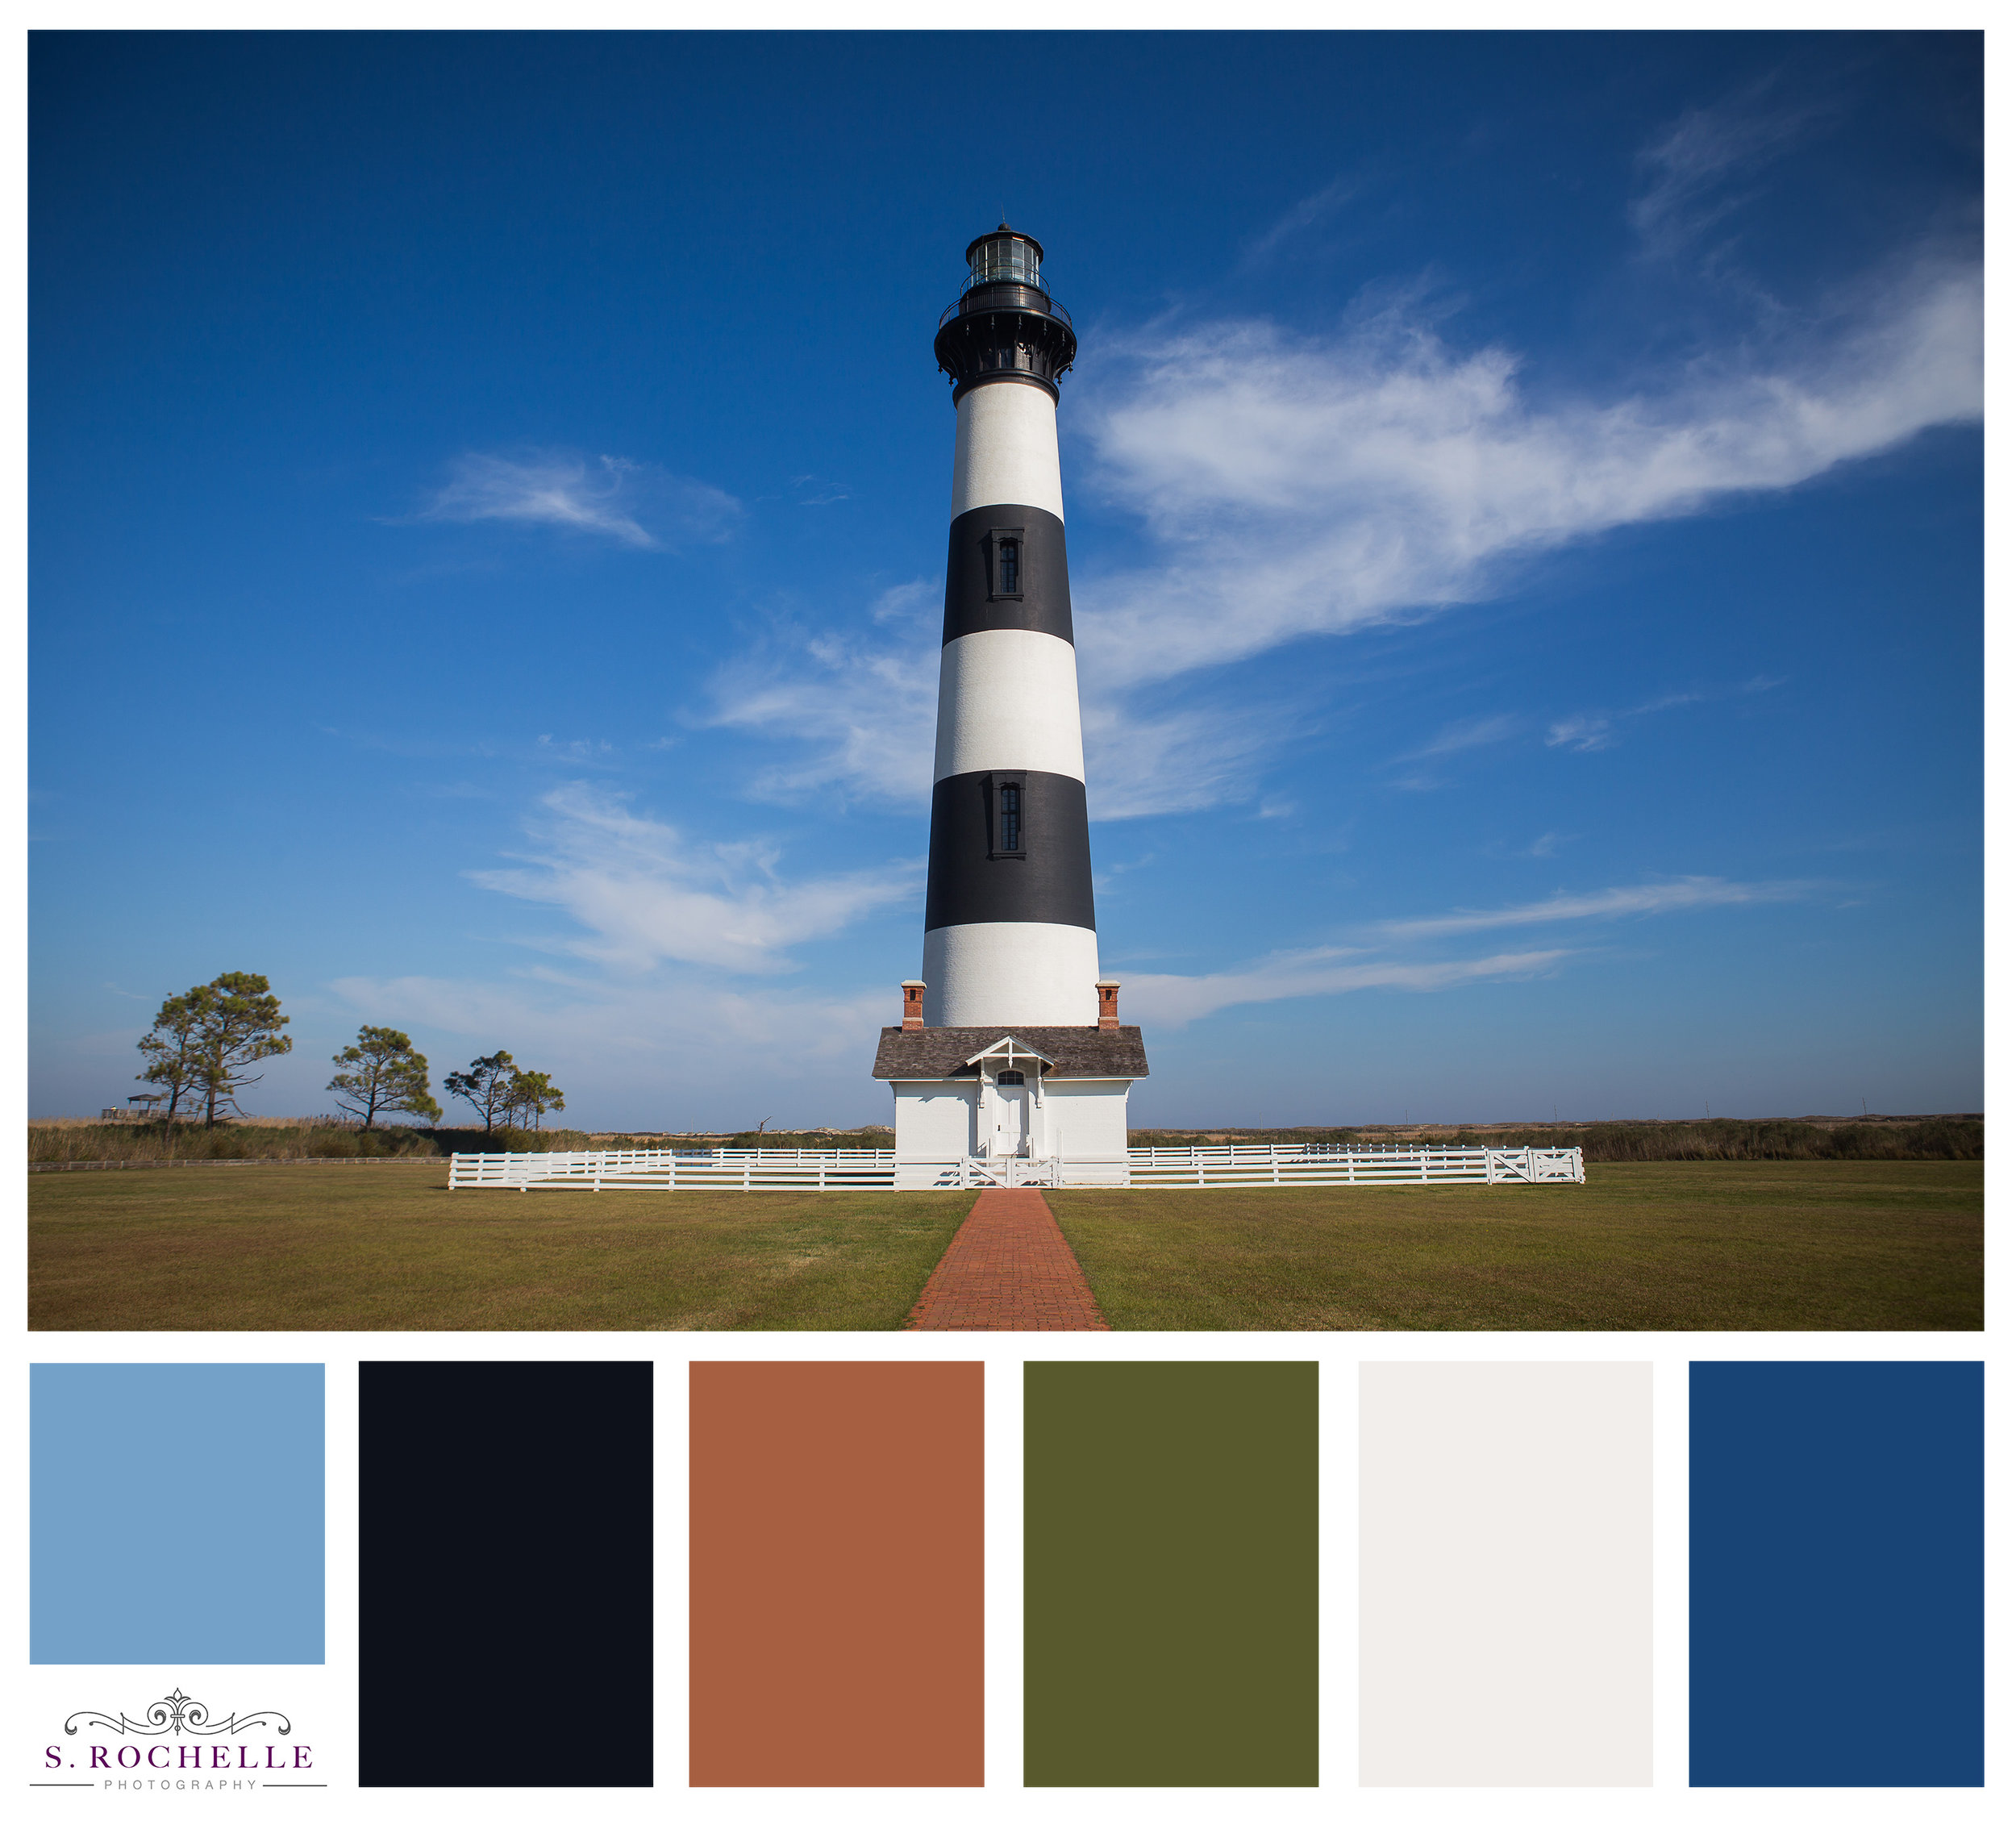 Bodie_Island_Lighthouse_S_Rochelle_Photography_20151211_IMG_6416_ColorPalette.jpg